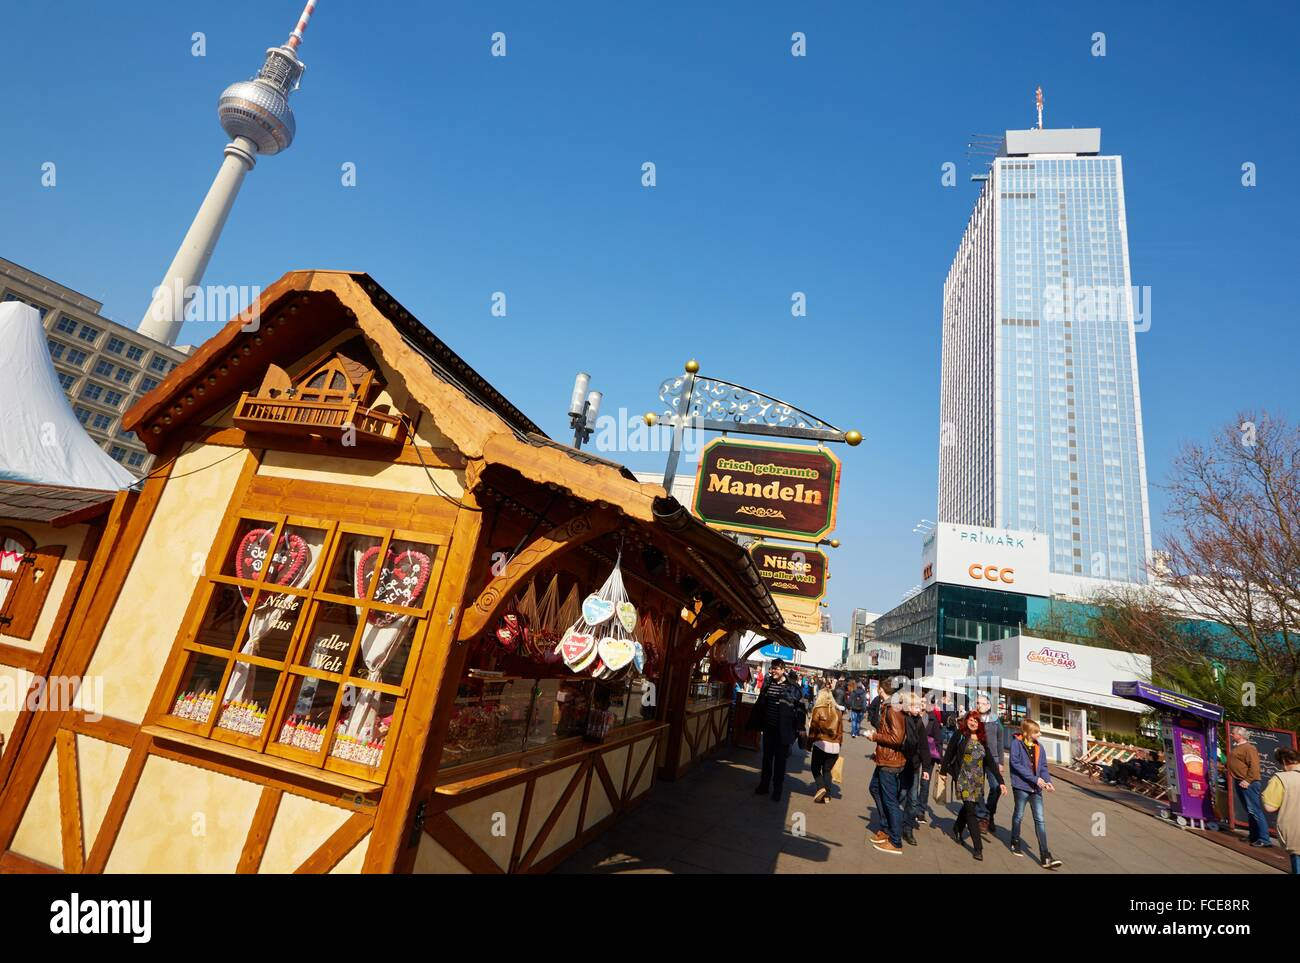 Television tower, Alexanderplatz, Berlin, Germany. - Stock Image